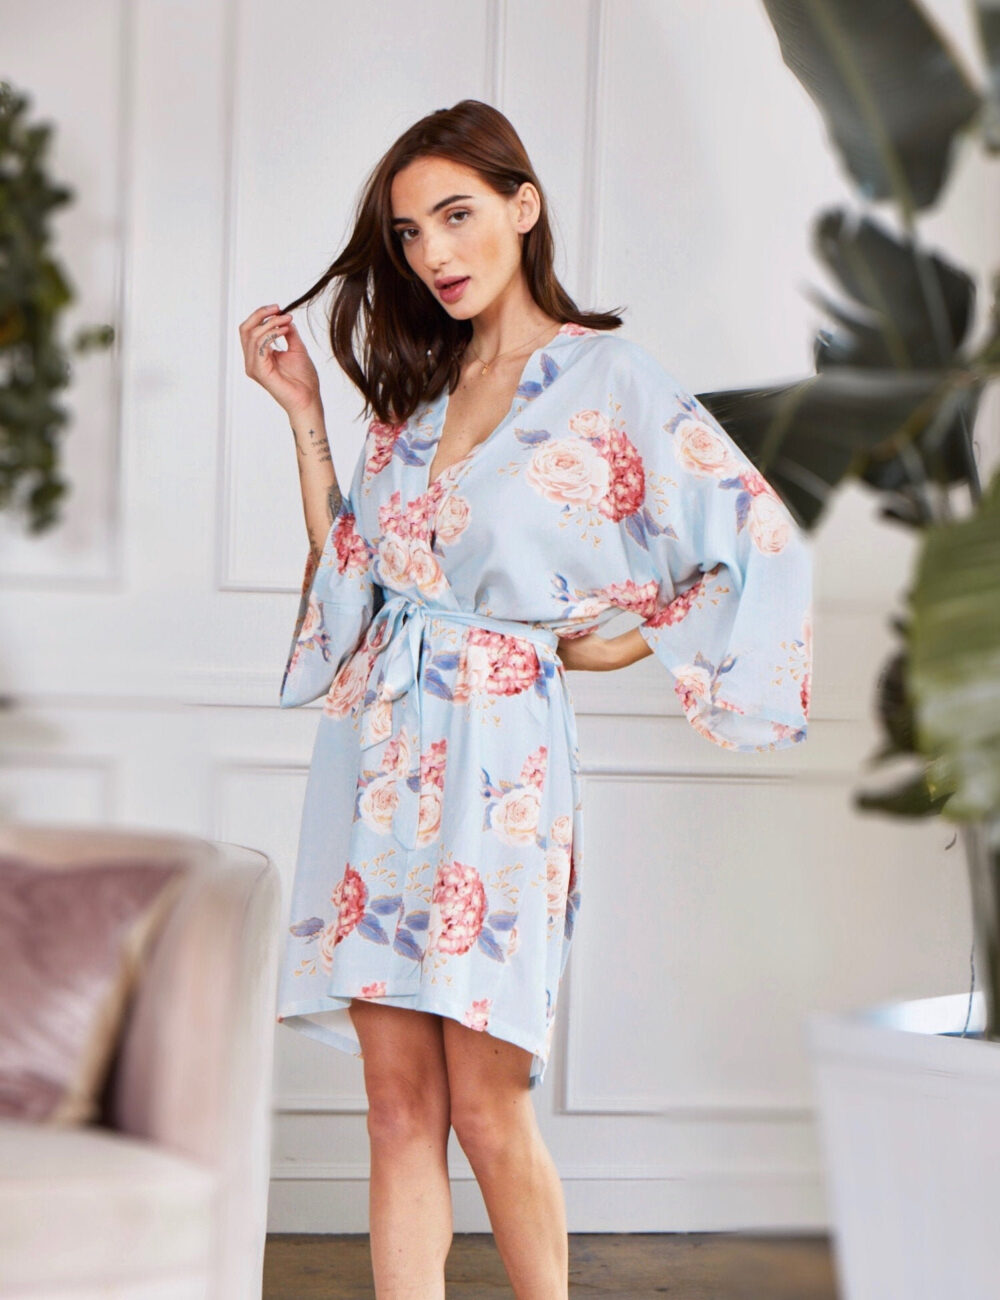 Floral Bridesmaid Robes, Wedding Day Robe, Bridal Party Robe For Bridesmaids, Maid Of Honor Cotton